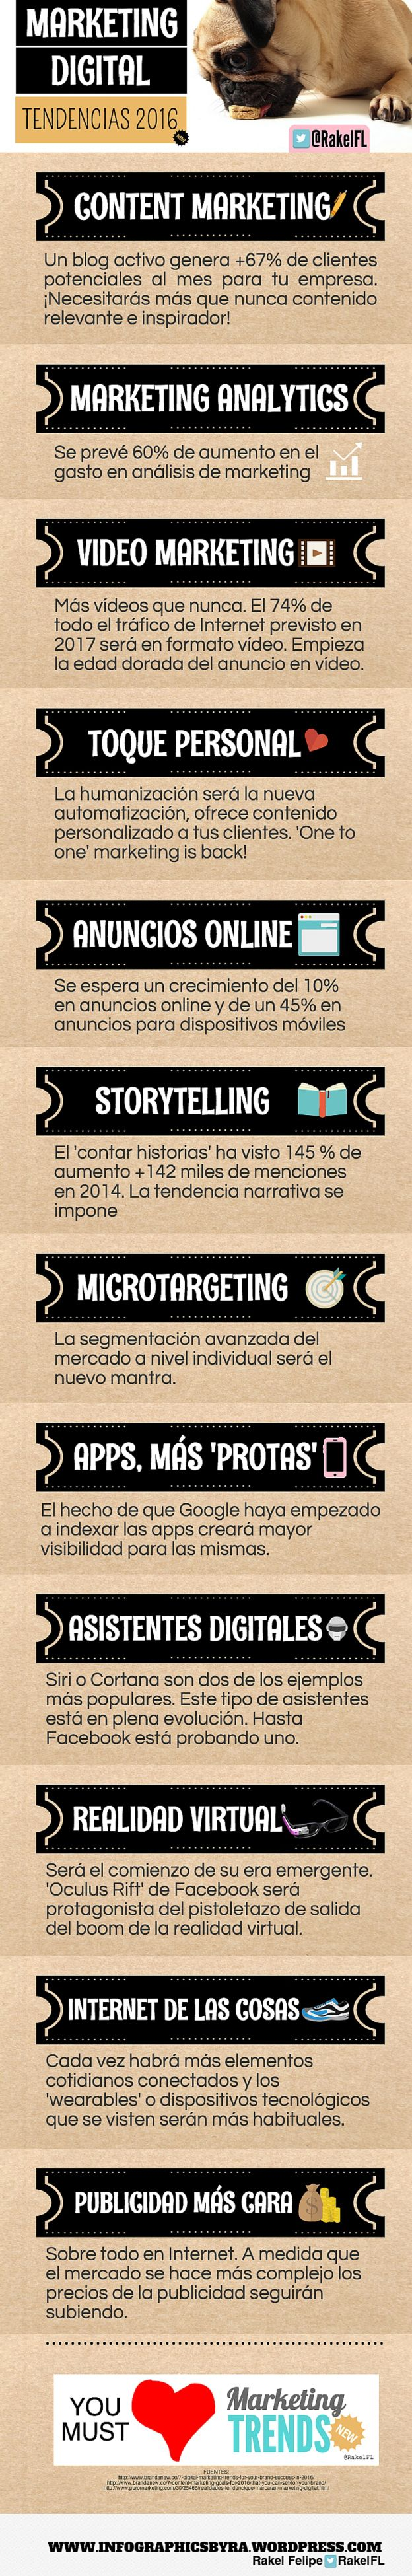 12 tendencias en Marketing Digital para 2016 #infografia #infographic #marketing